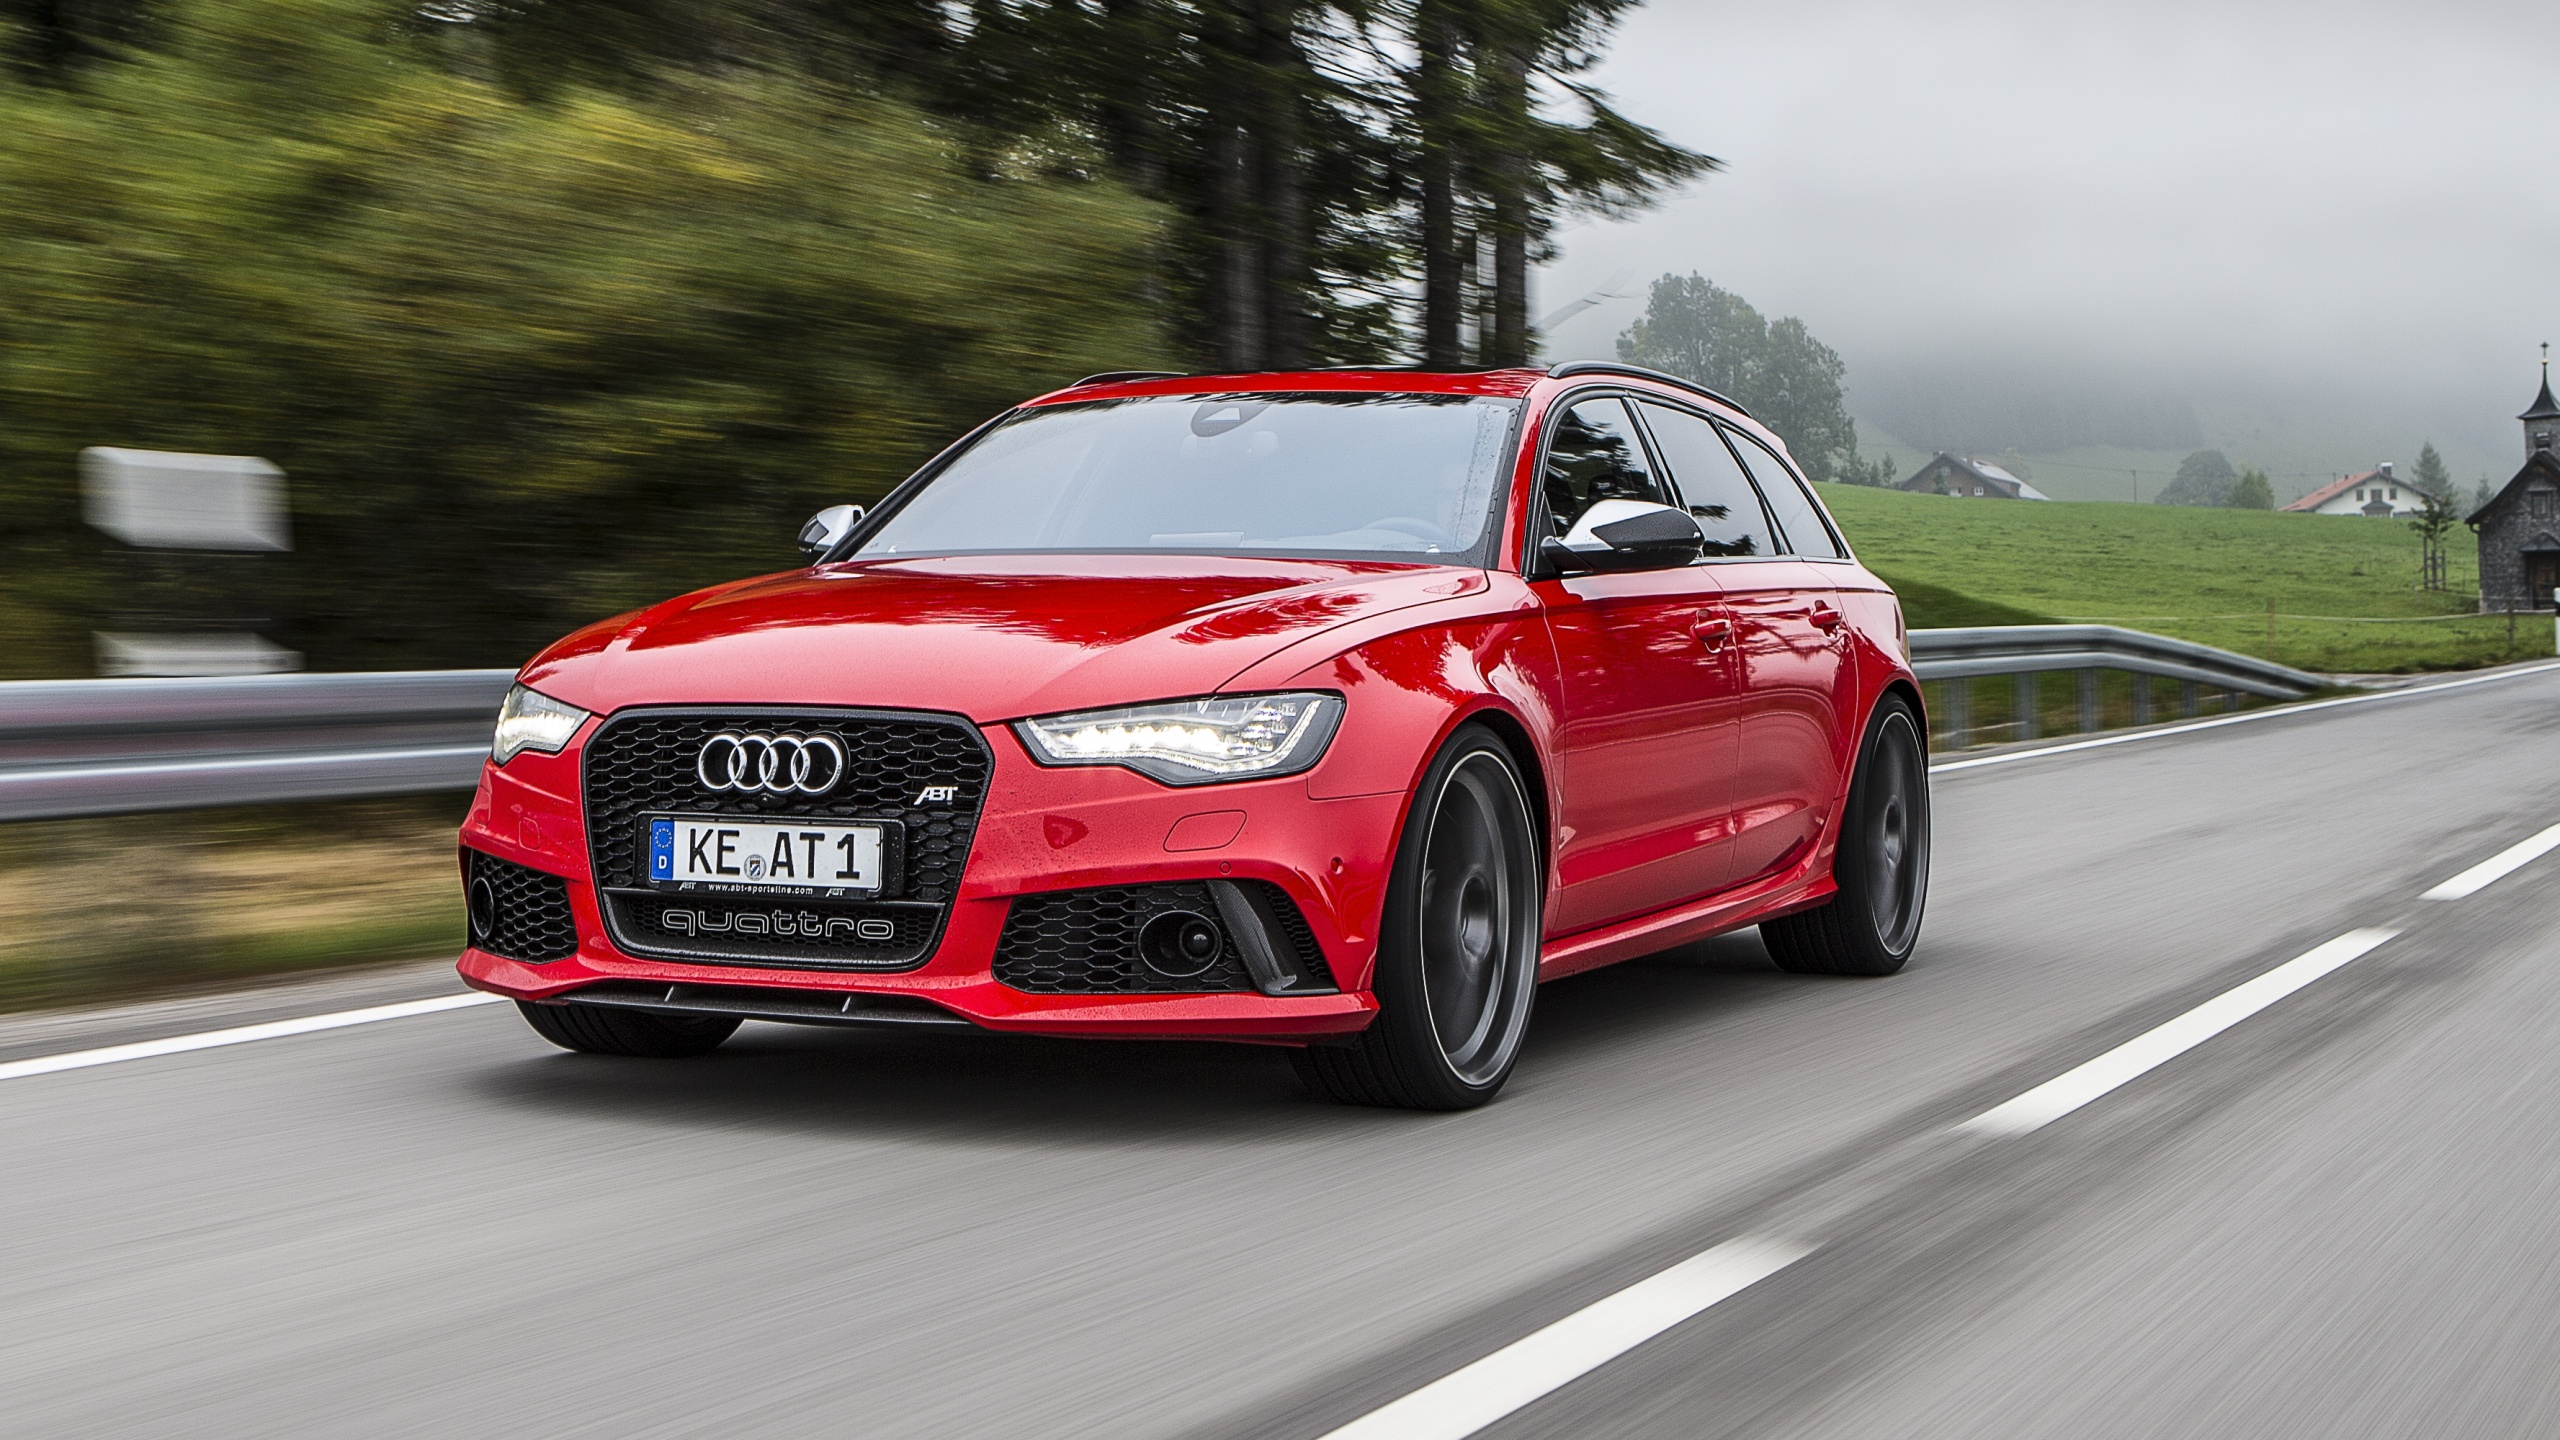 Red Audi Rs6 Avant 2013 Wallpapers 2560x1440 1239164